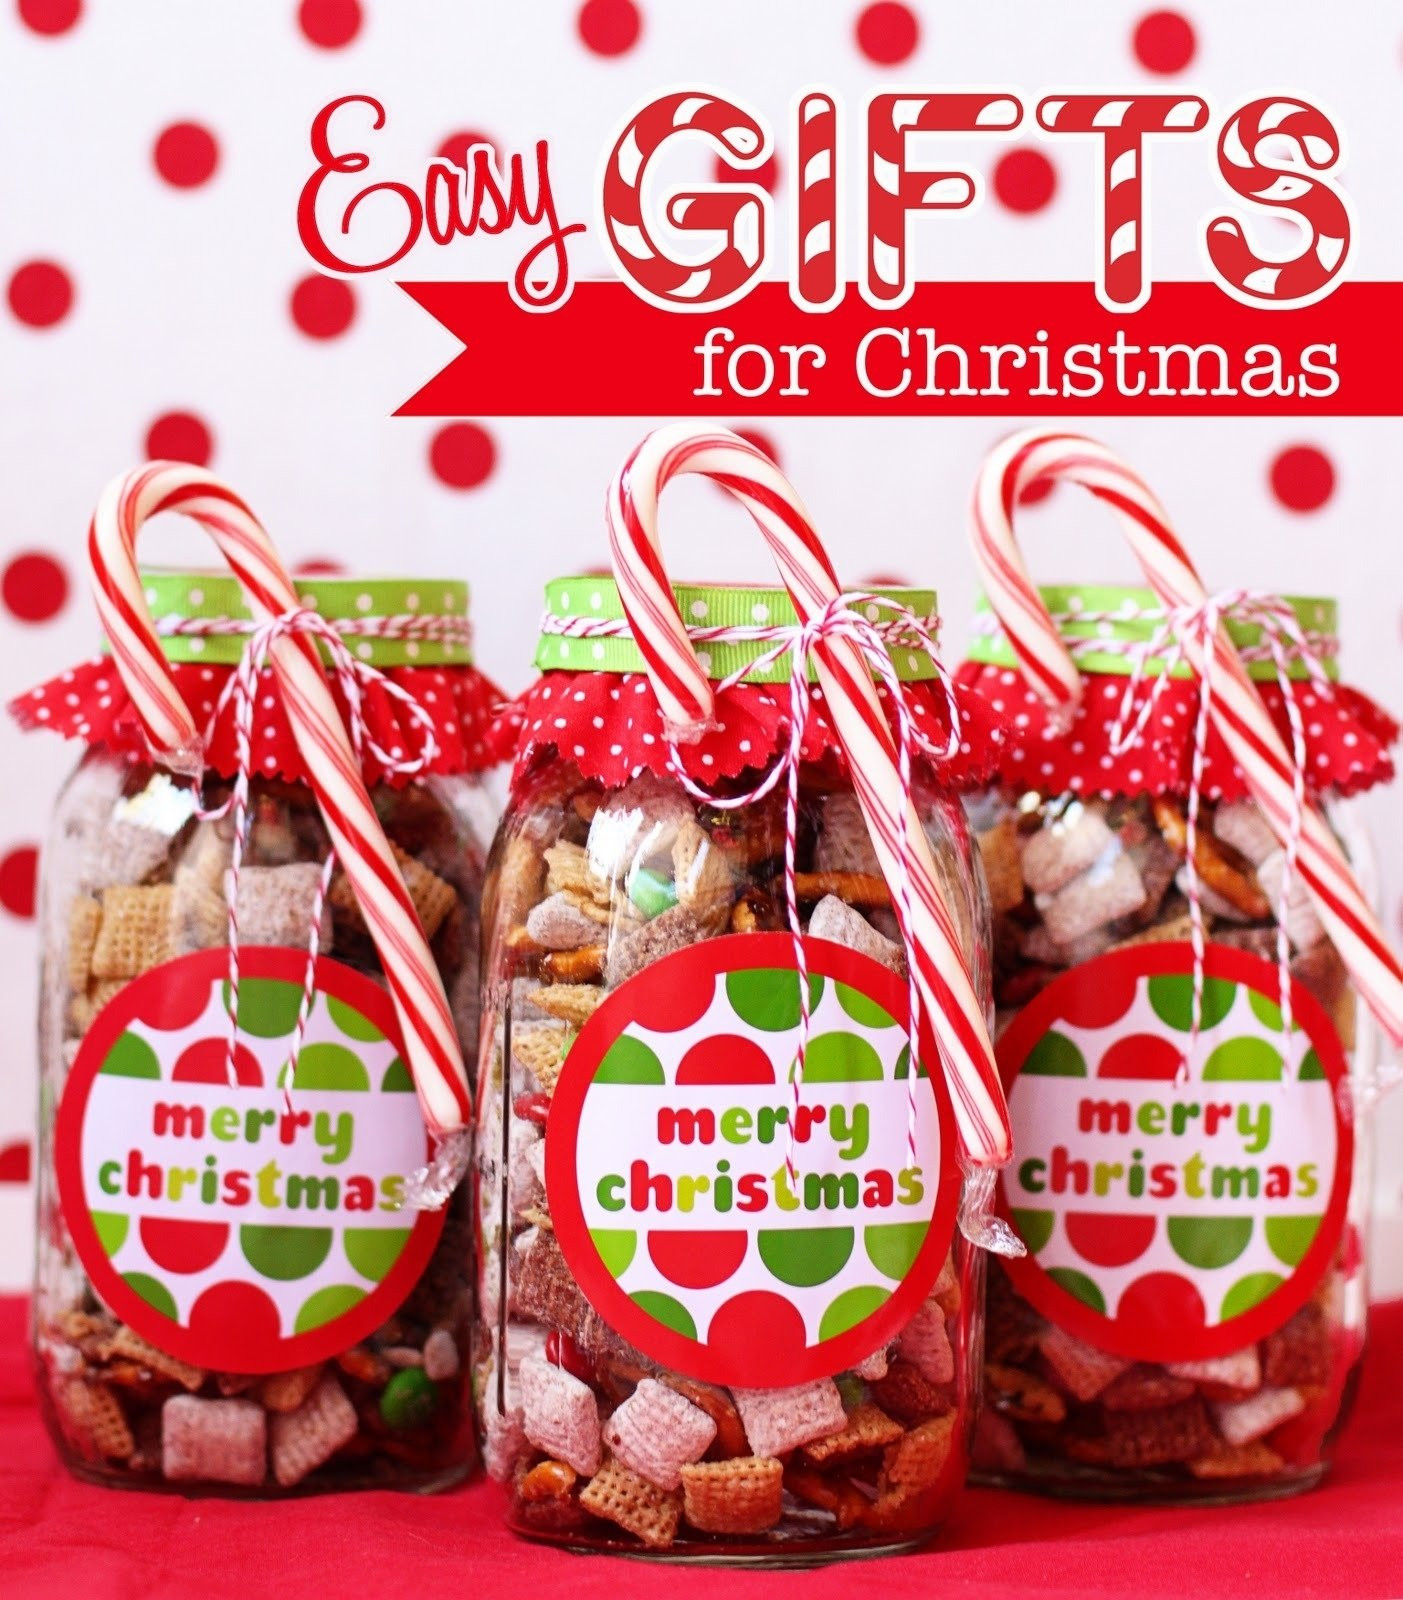 Best ideas about Christmas Gift Ideas For Employees . Save or Pin 10 Lovely Christmas Gift Ideas For Employees Now.